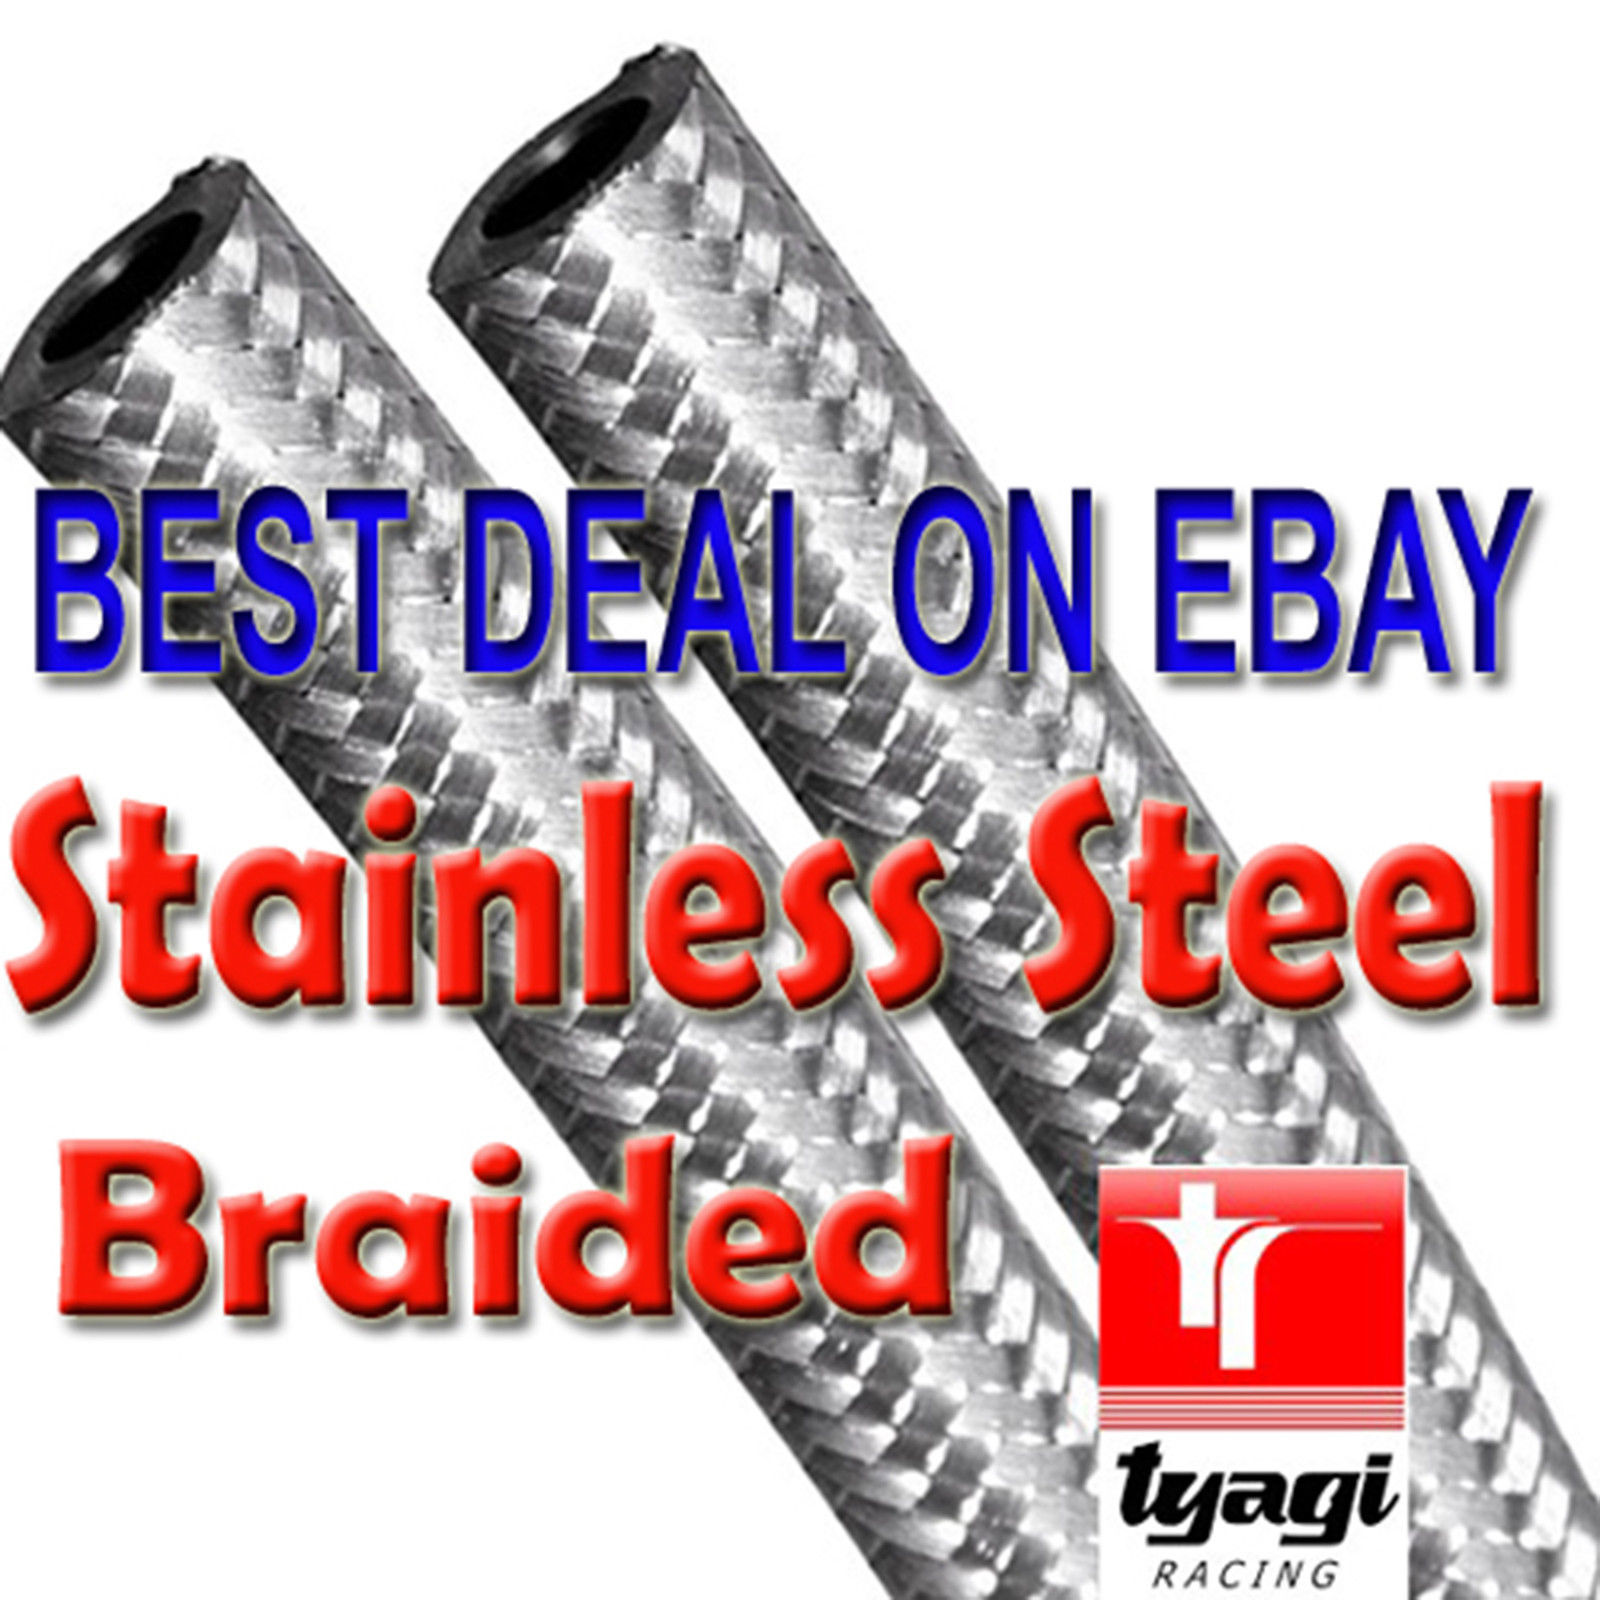 8mm Stainless Steel Braided Fuel Line Petrol and 50 similar items